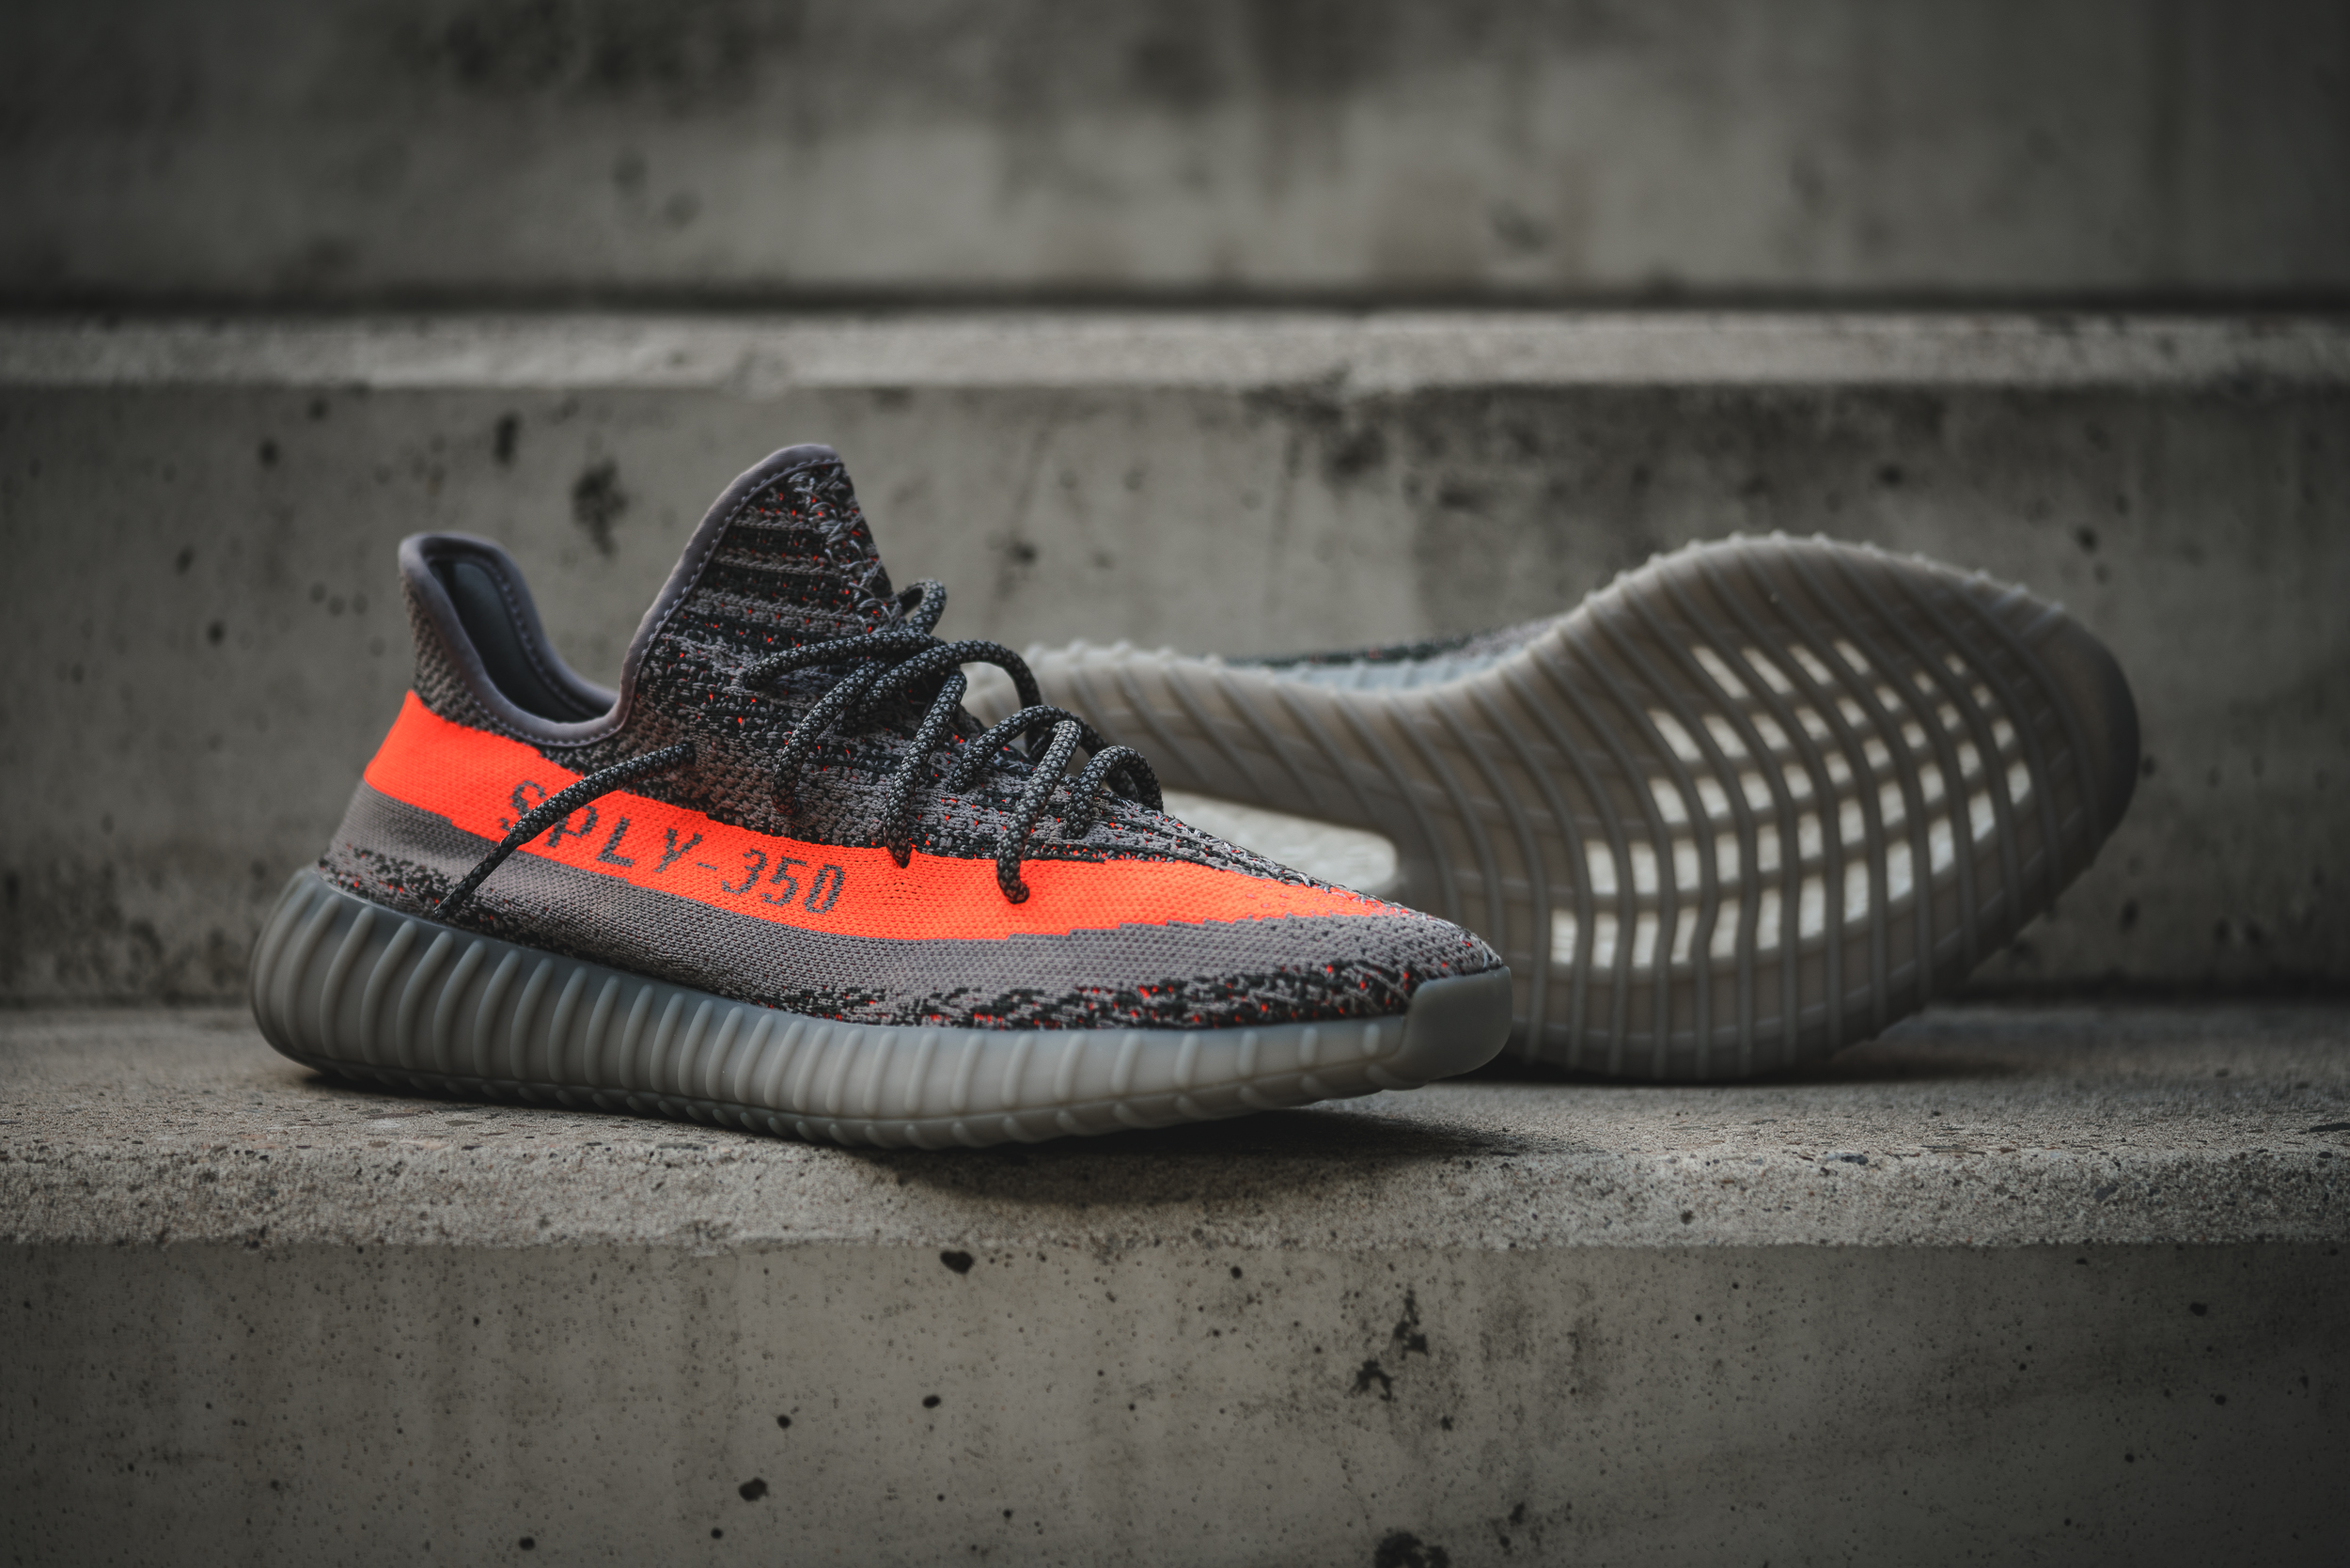 Boost V2 Us 350 FotossnipesHypes Yeezy Are sQhrtd